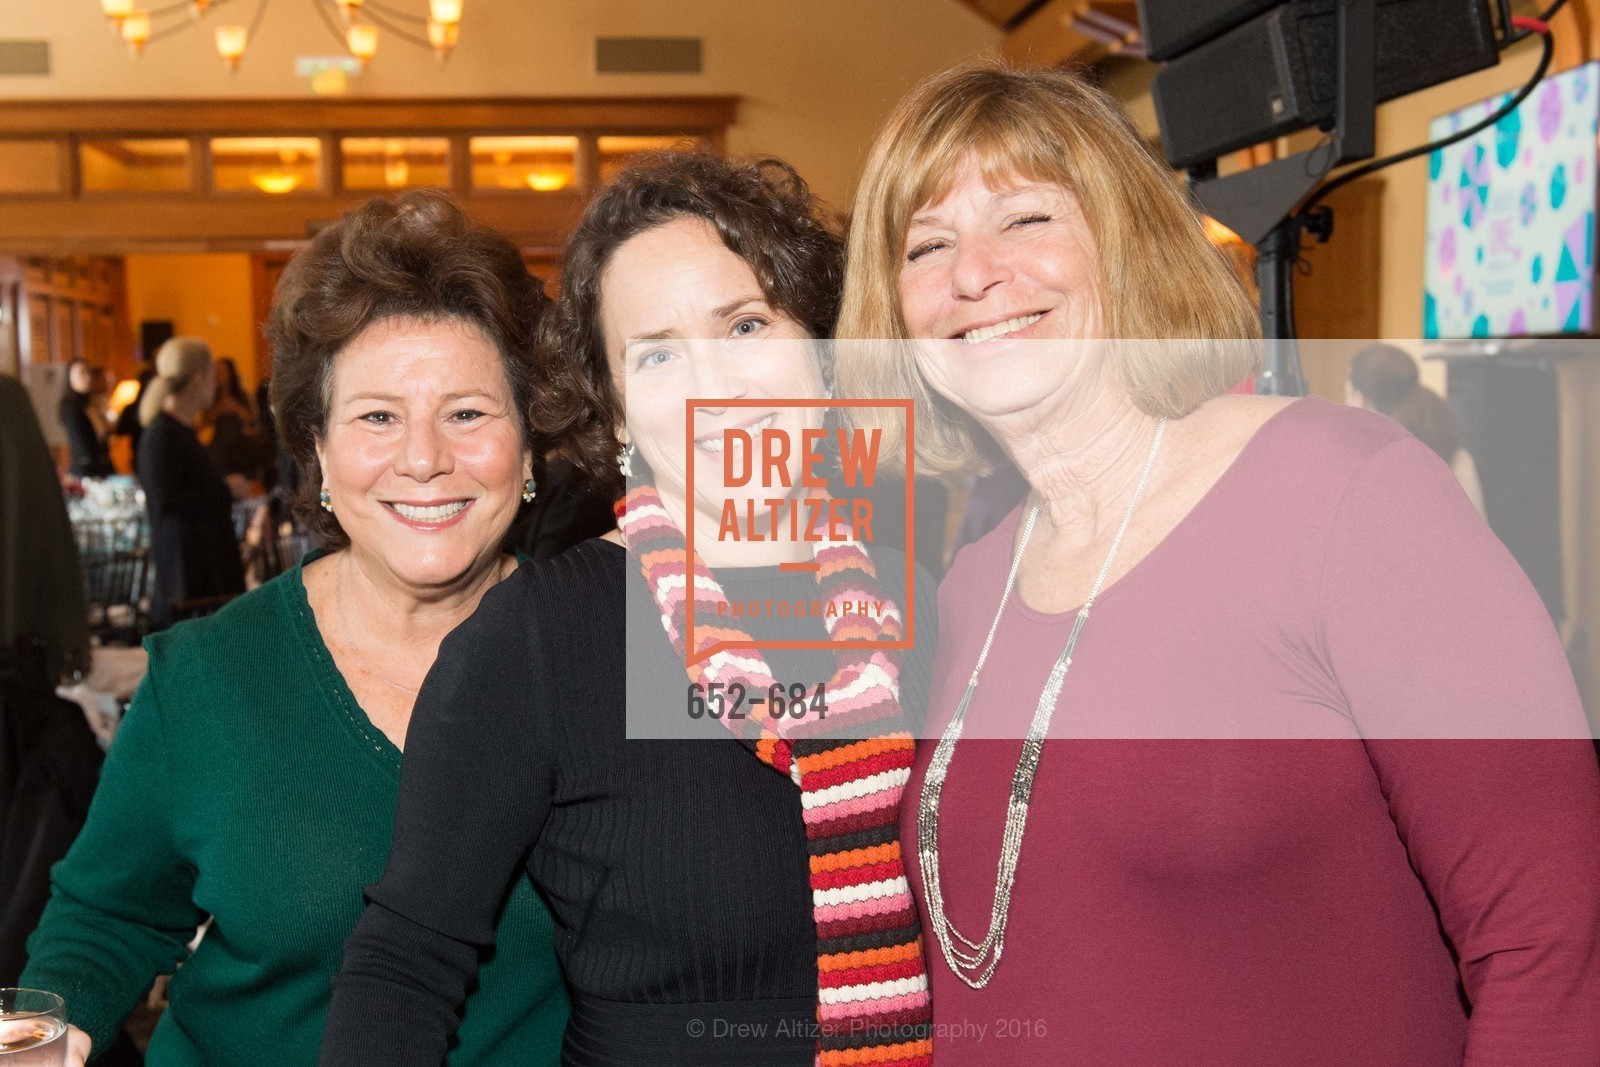 Betsy Rosenthal, Stephanie Rudolph, Holly Roslow, Photo #652-684